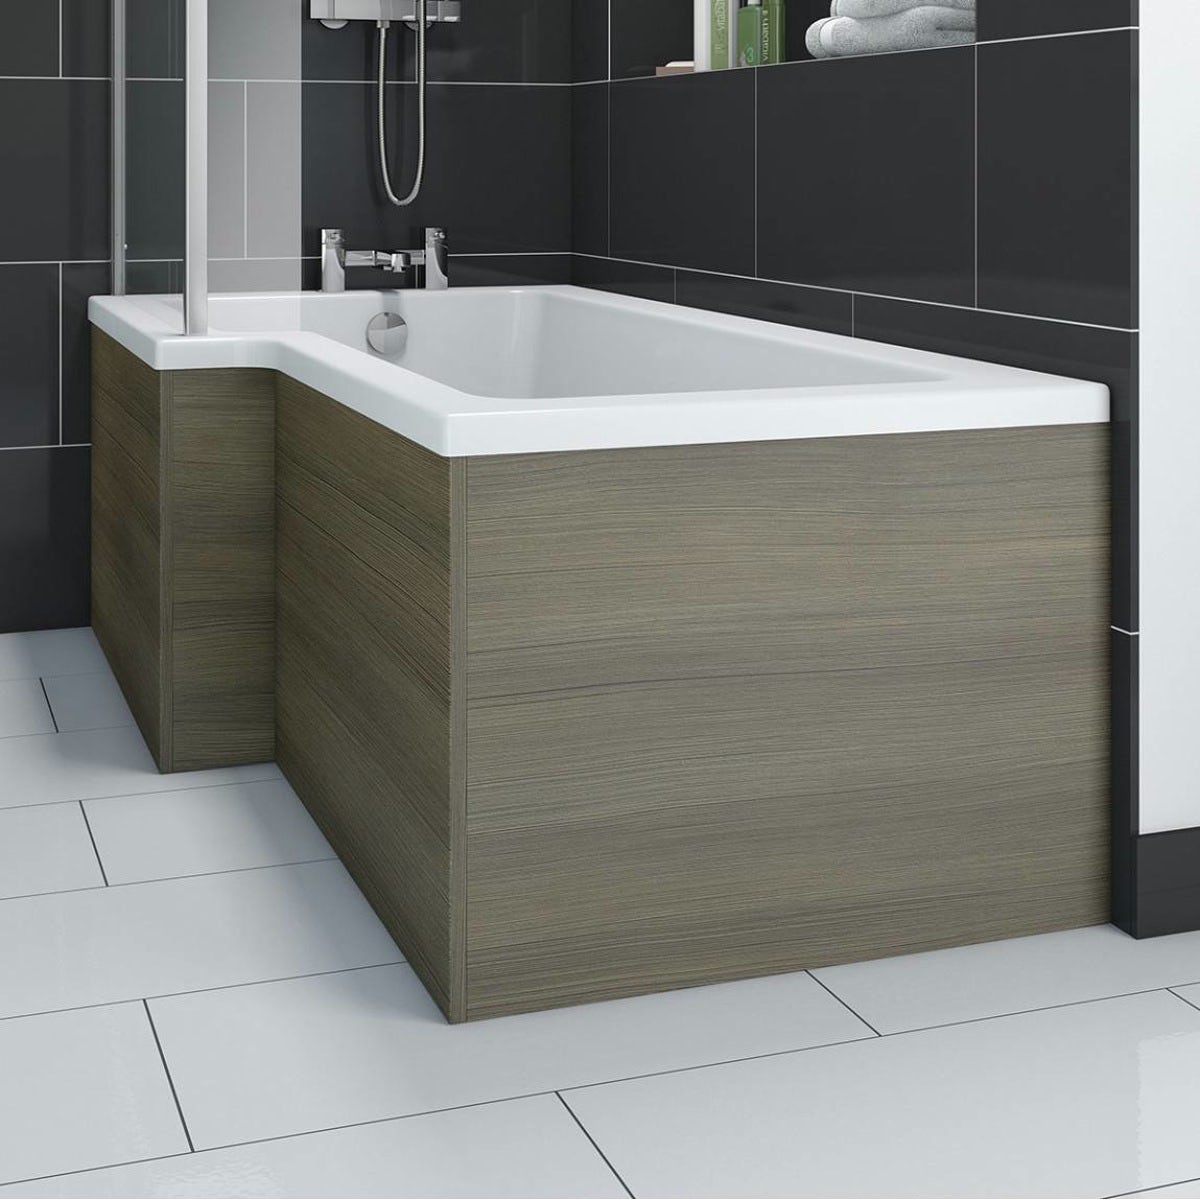 Orchard Wye walnut shower bath panel pack 1700 x 700